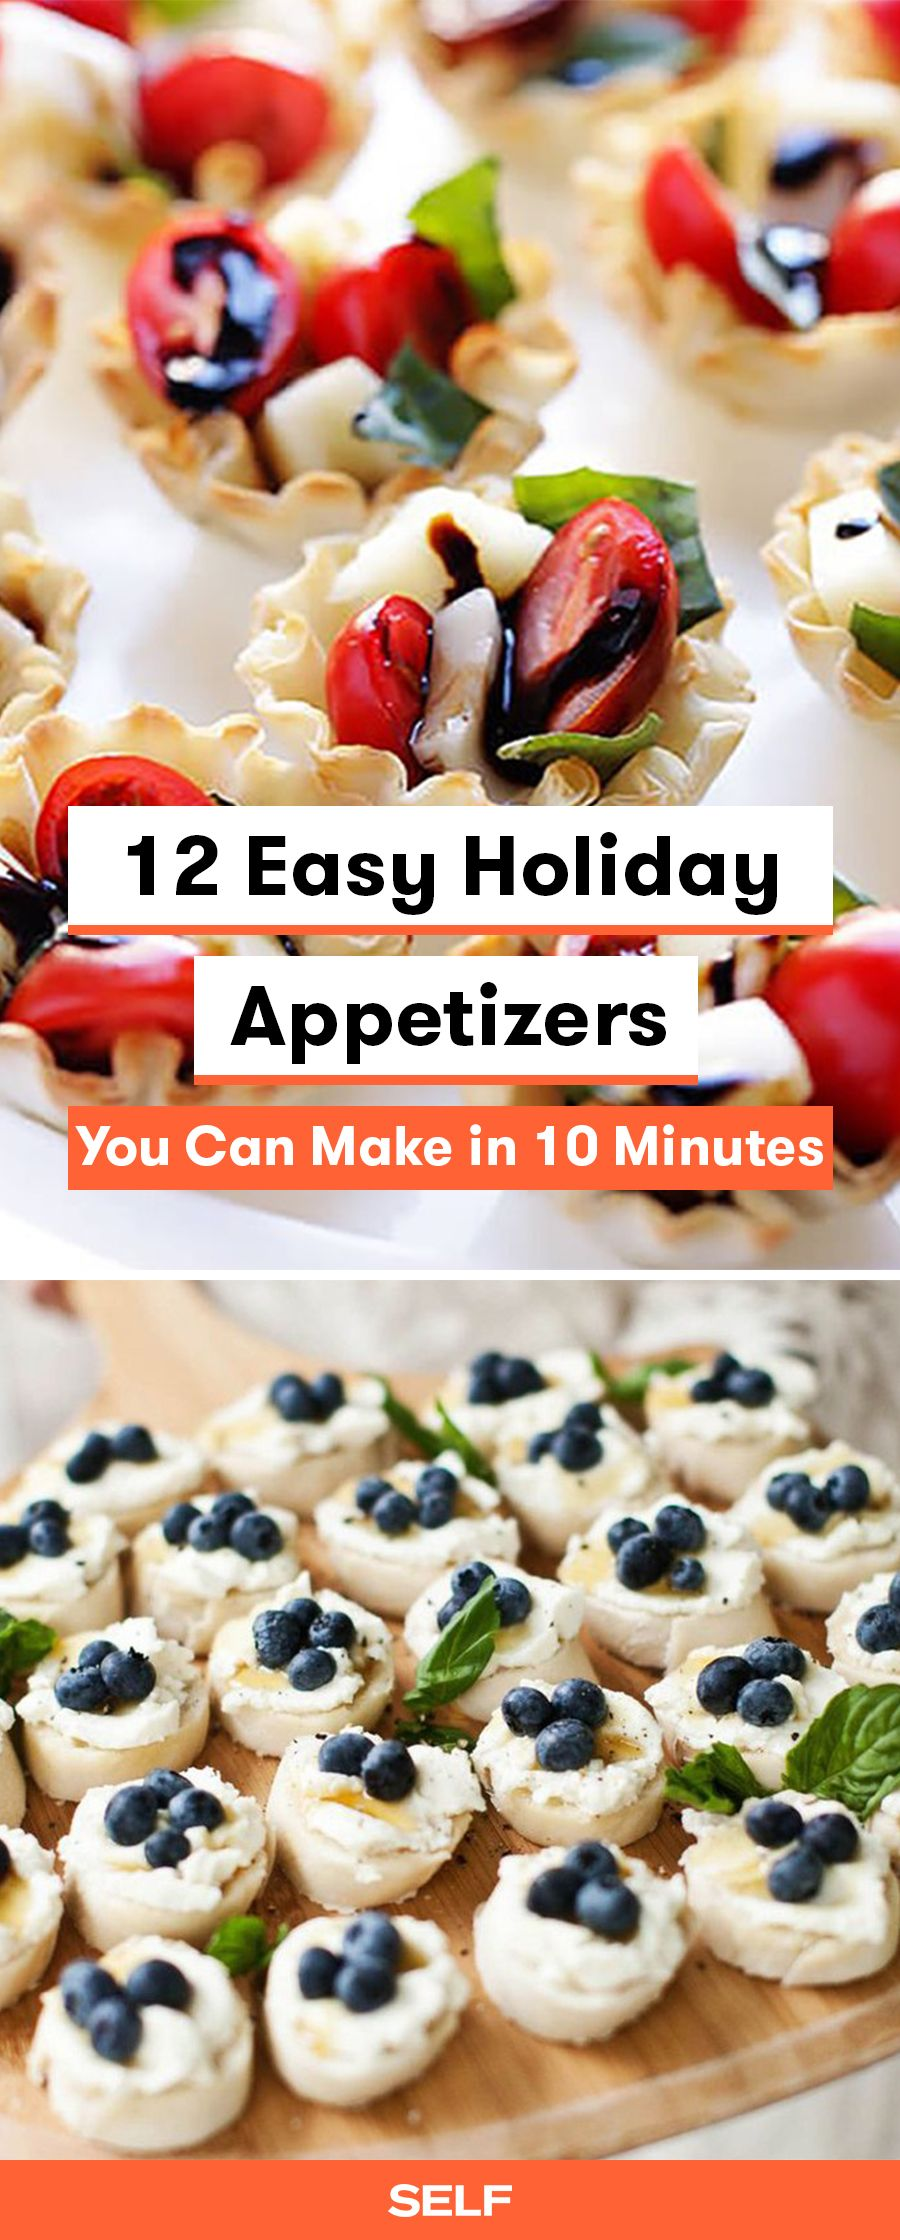 12 Easy Holiday Appetizers You Can Make in 10 Minutes | Holiday appetizers, Appetizers for party ...